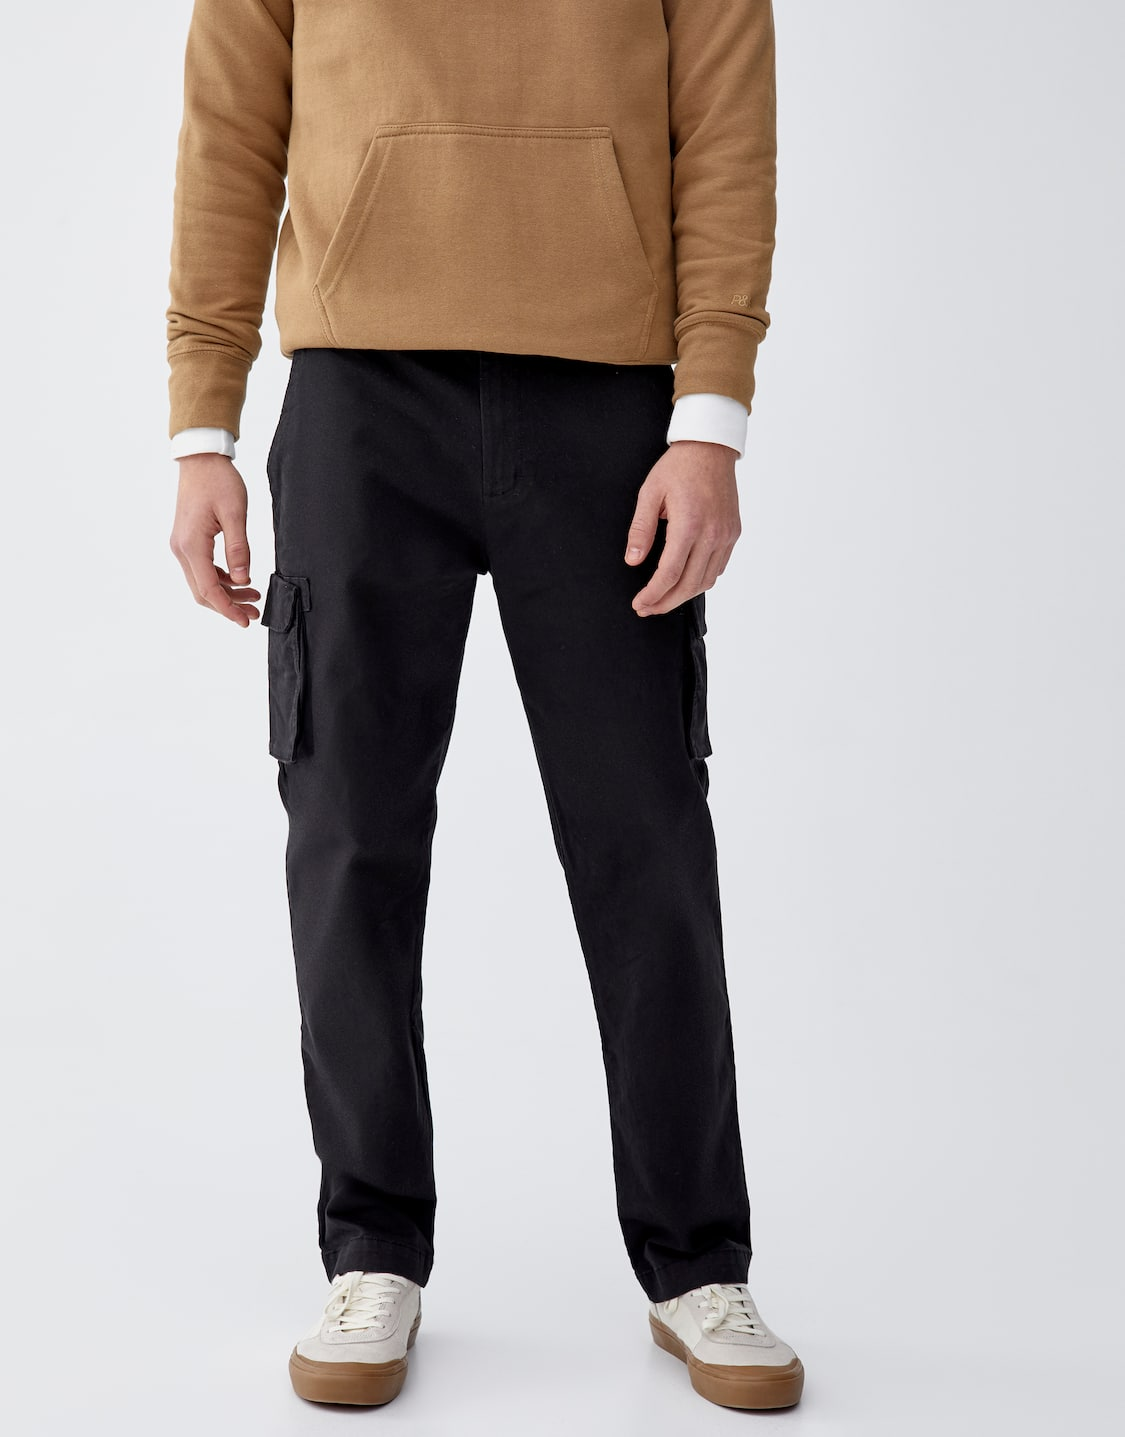 Black cargo trousers with pockets - pull bear efea9f3b7c5